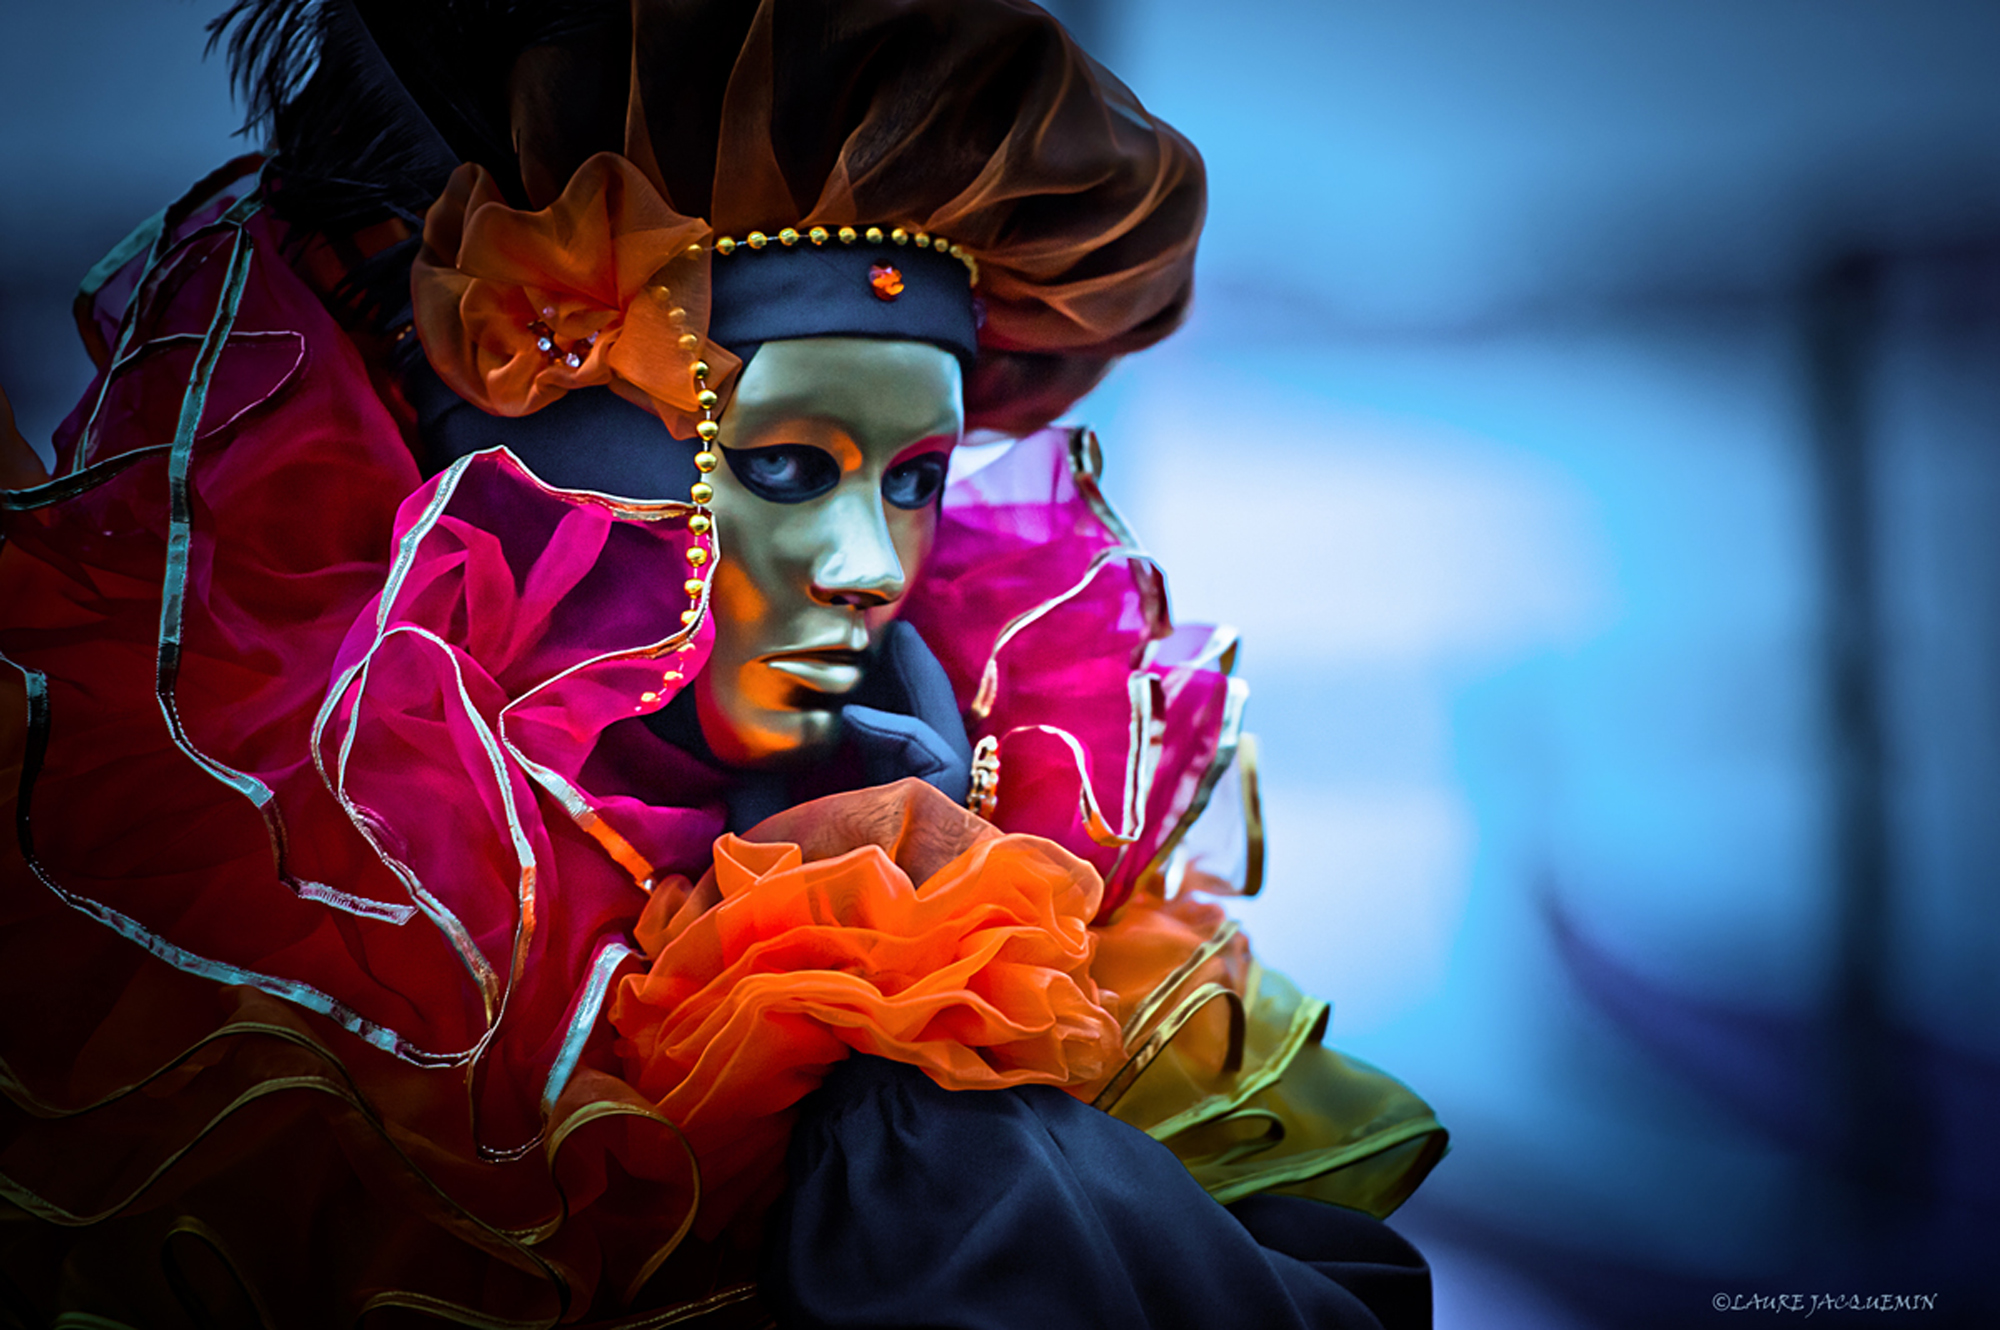 personal works laure jacquemin best venice carnaval photography (47).jpg